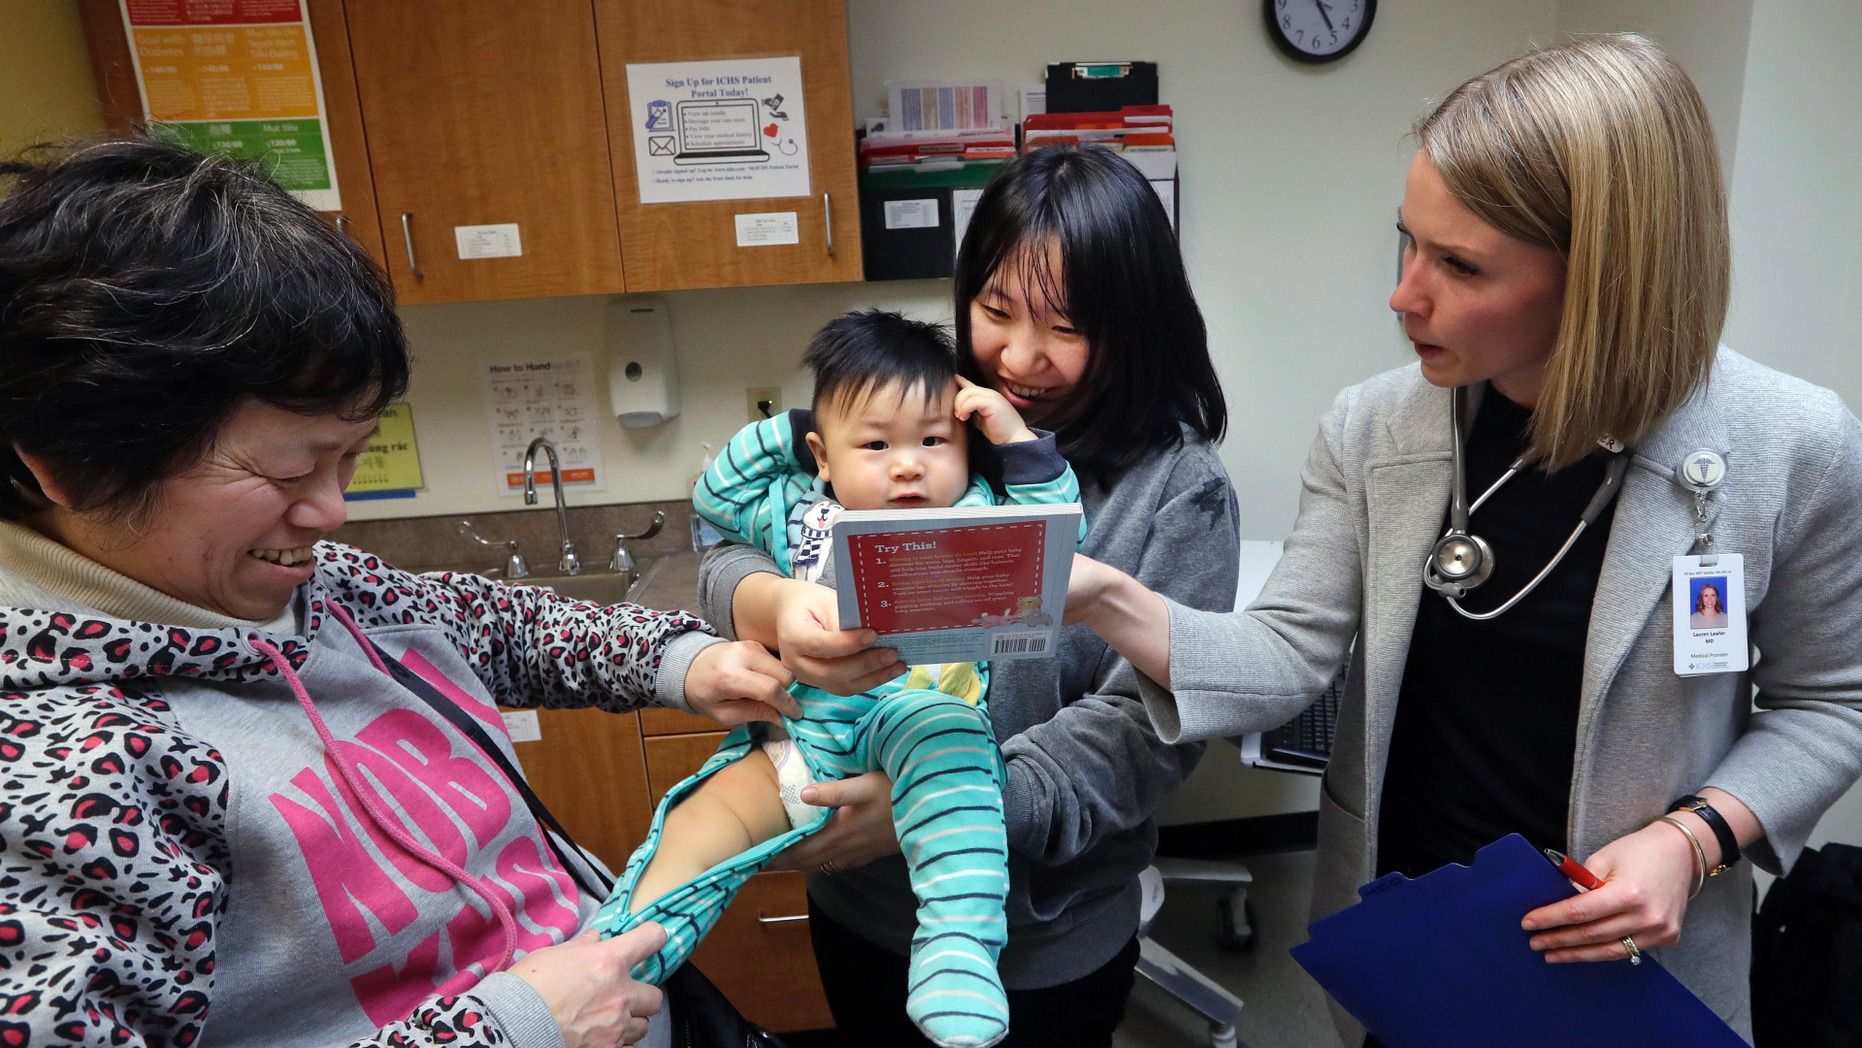 CORRECTS SPELLING OF ABEL, NOT ABLE - As his mother Wenyi Zhang holds him, one-year-old Abel Zhang looks at the book being given him by Dr. Lauren Lawler, right, as his grandmother Ding Hong helps with his clothes moments after the child received the last of three inoculations, including a vaccine for measles, mumps, and rubella (MMR), at the International Community Health Services Wednesday, Feb. 13, 2019, in Seattle. A recent measles outbreak has sickened dozens of people in the Pacific Northwest, most in Washington state and, of those, most are concentrated in Clark County, just north of Portland, Oregon. Washington Gov. Jay Inslee declared a state of emergency over the outbreak last month. (AP Photo/Elaine Thompson)